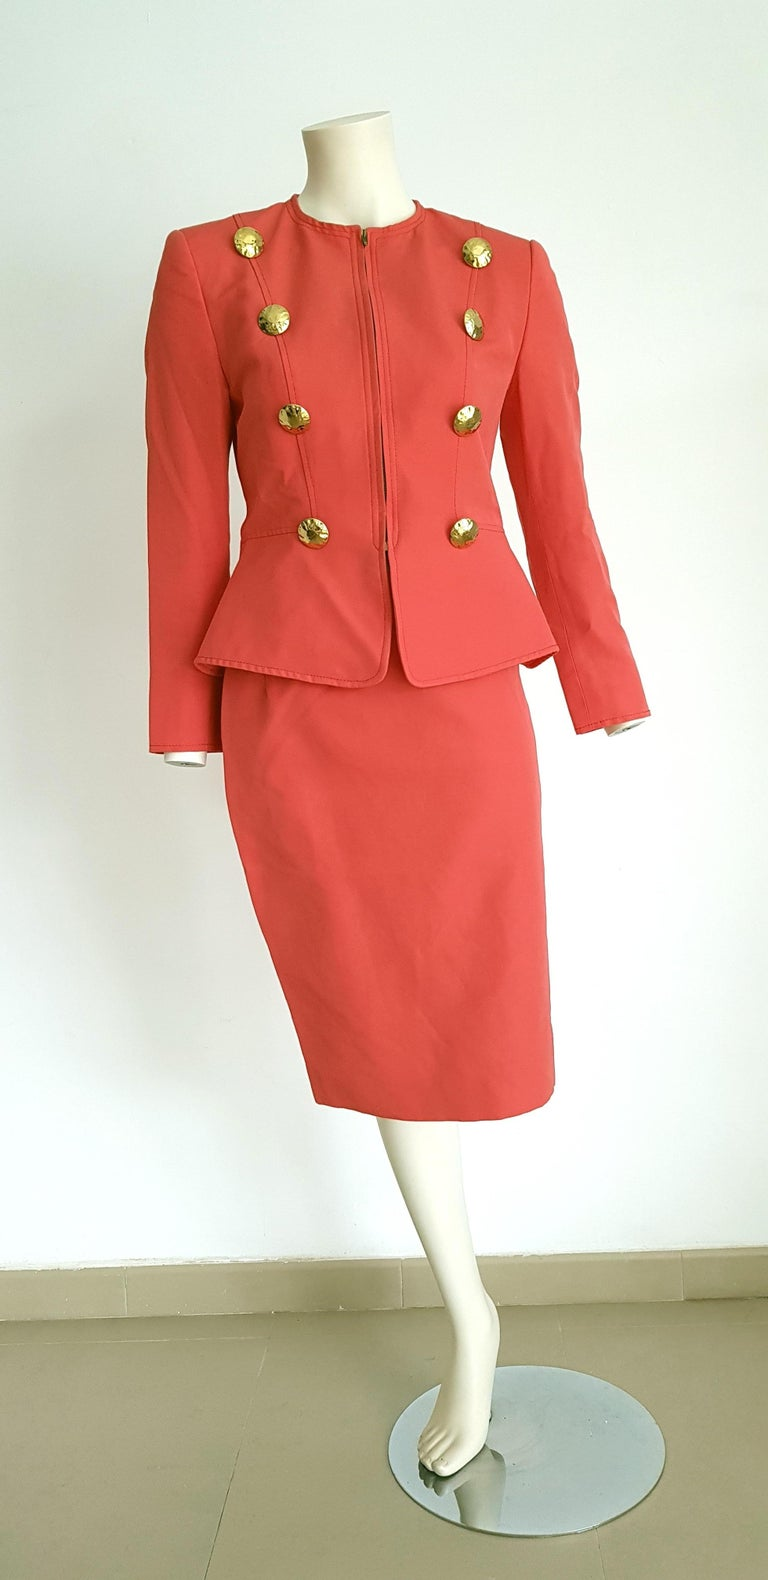 Christian LACROIX jacket and skirt cotton salmon color suit - Unworn, New  SIZE: equivalent to about Small / Medium, please review approx measurements as follows in cm.  JACKET: lenght 61, chest underarm to underarm 47, bust circumference 84,